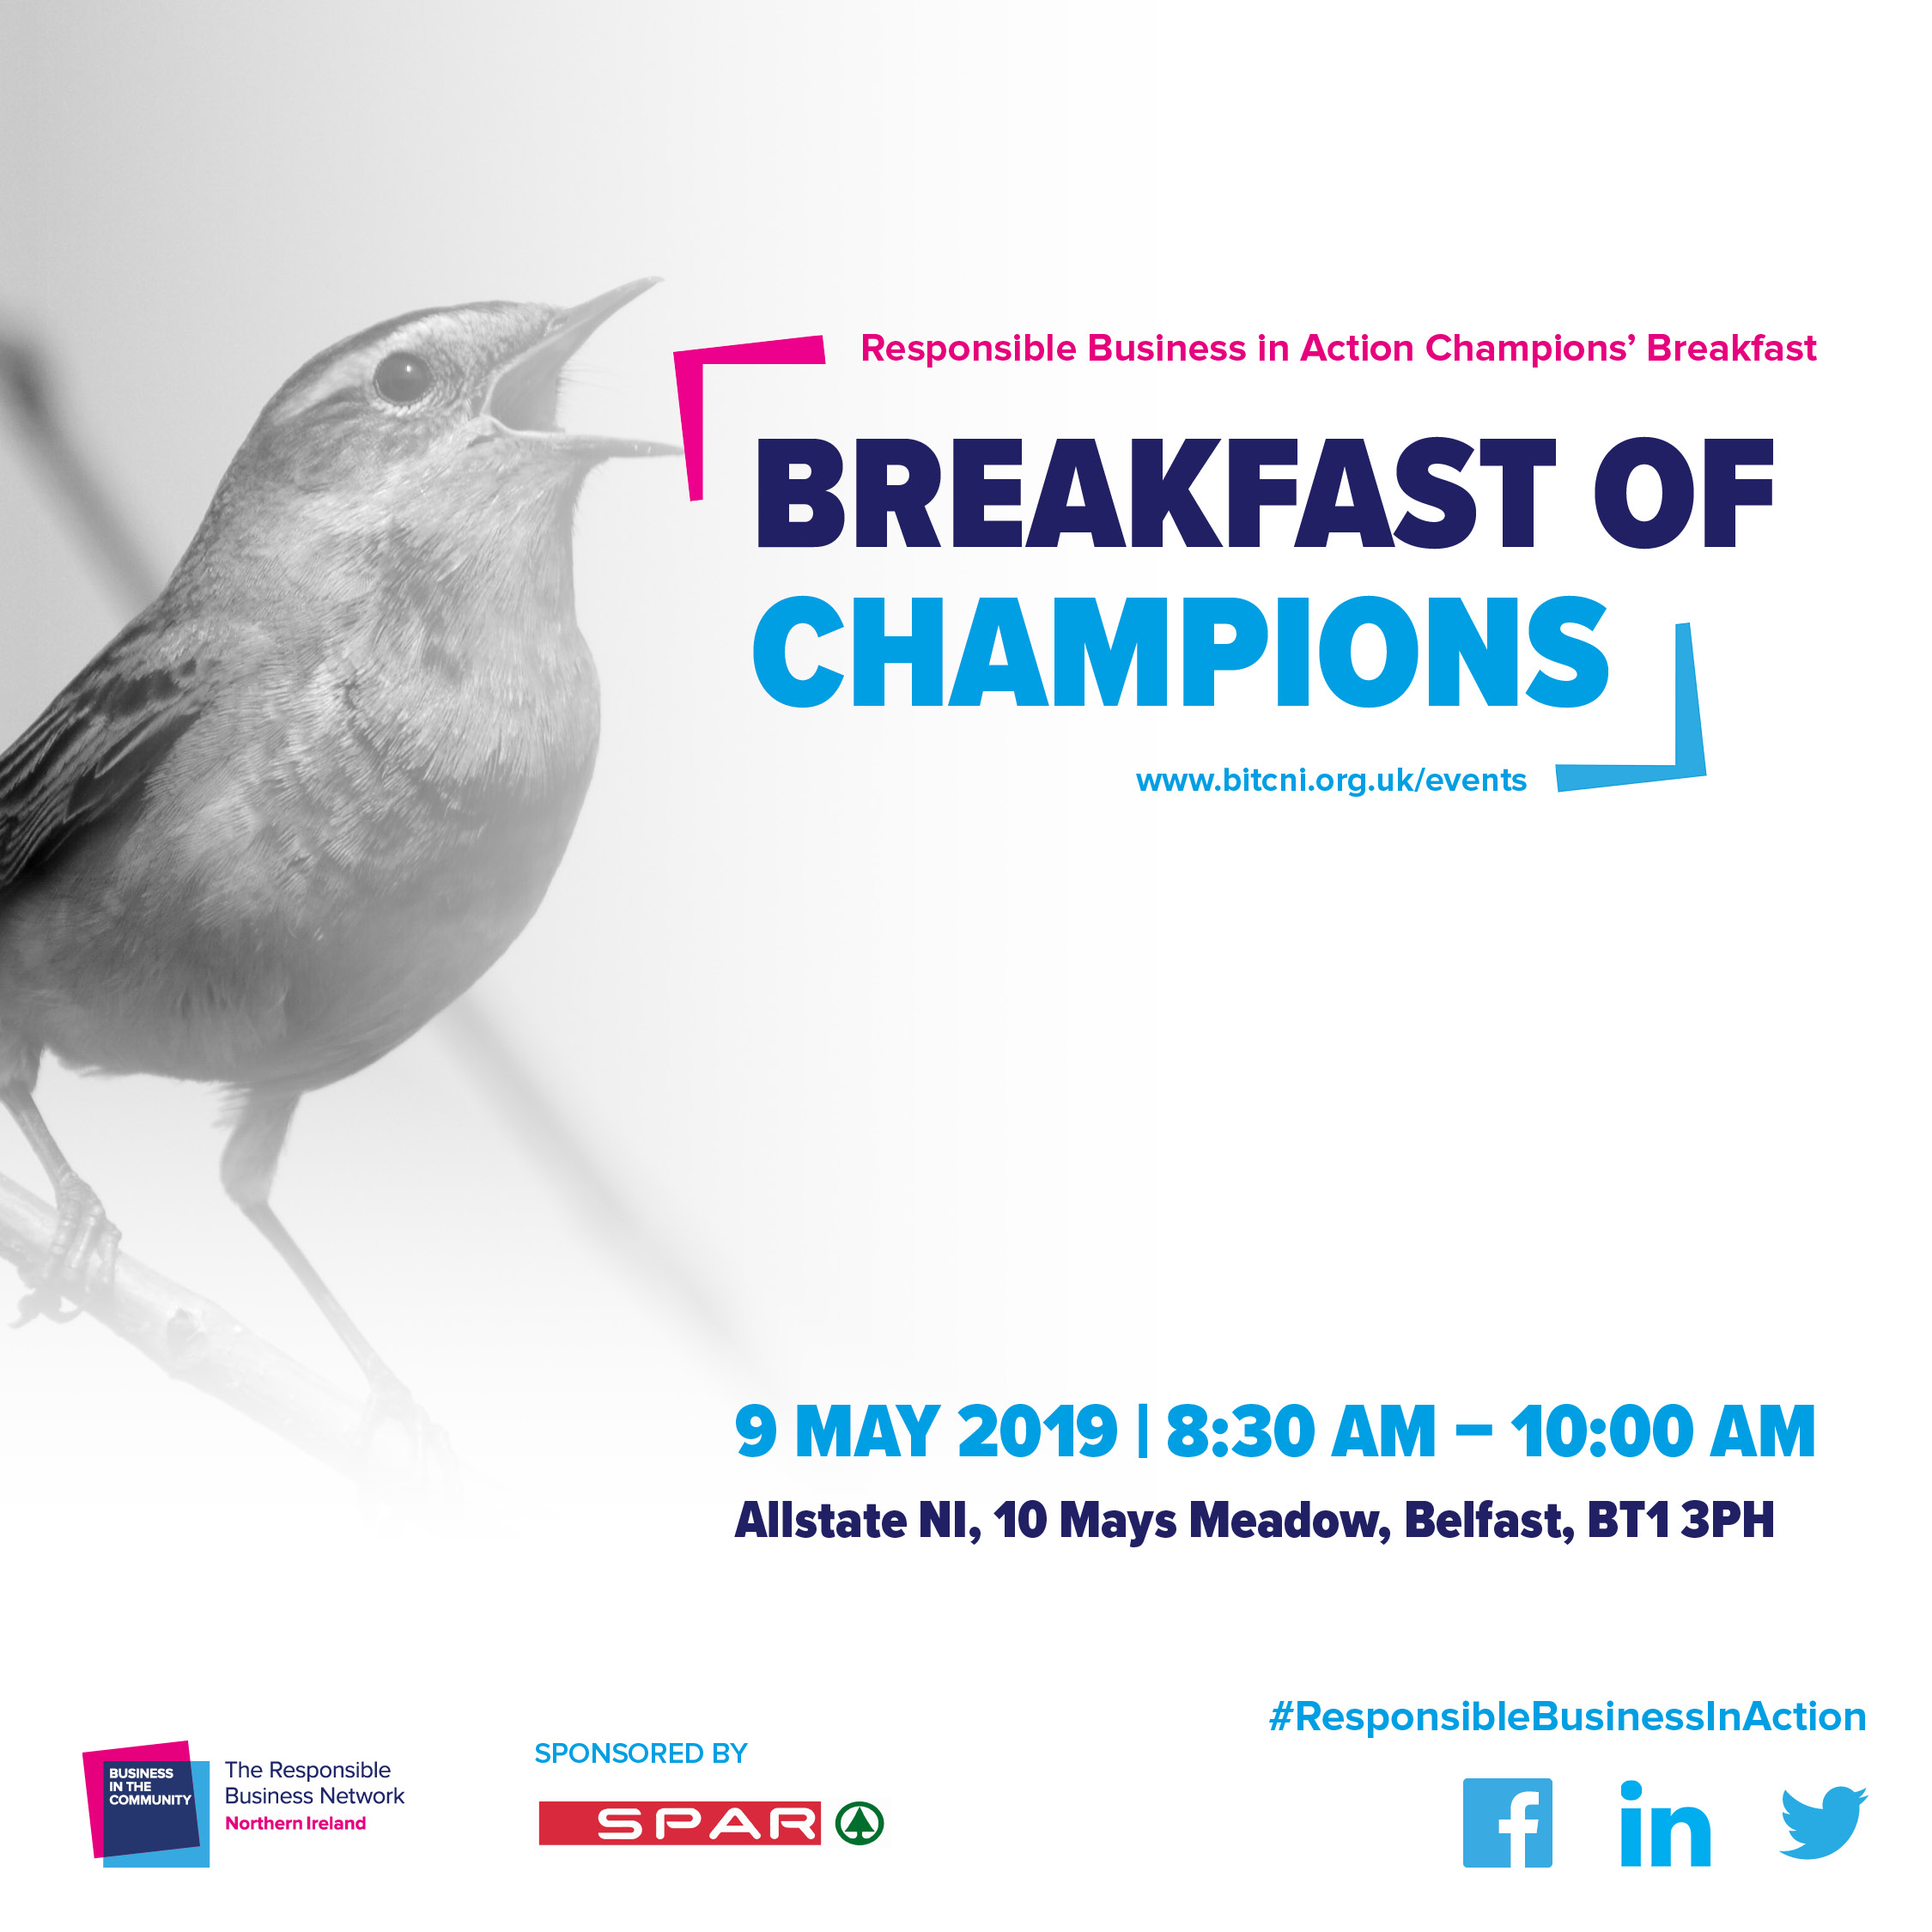 190321_Responsible Business in Action_Breakfast of Champions